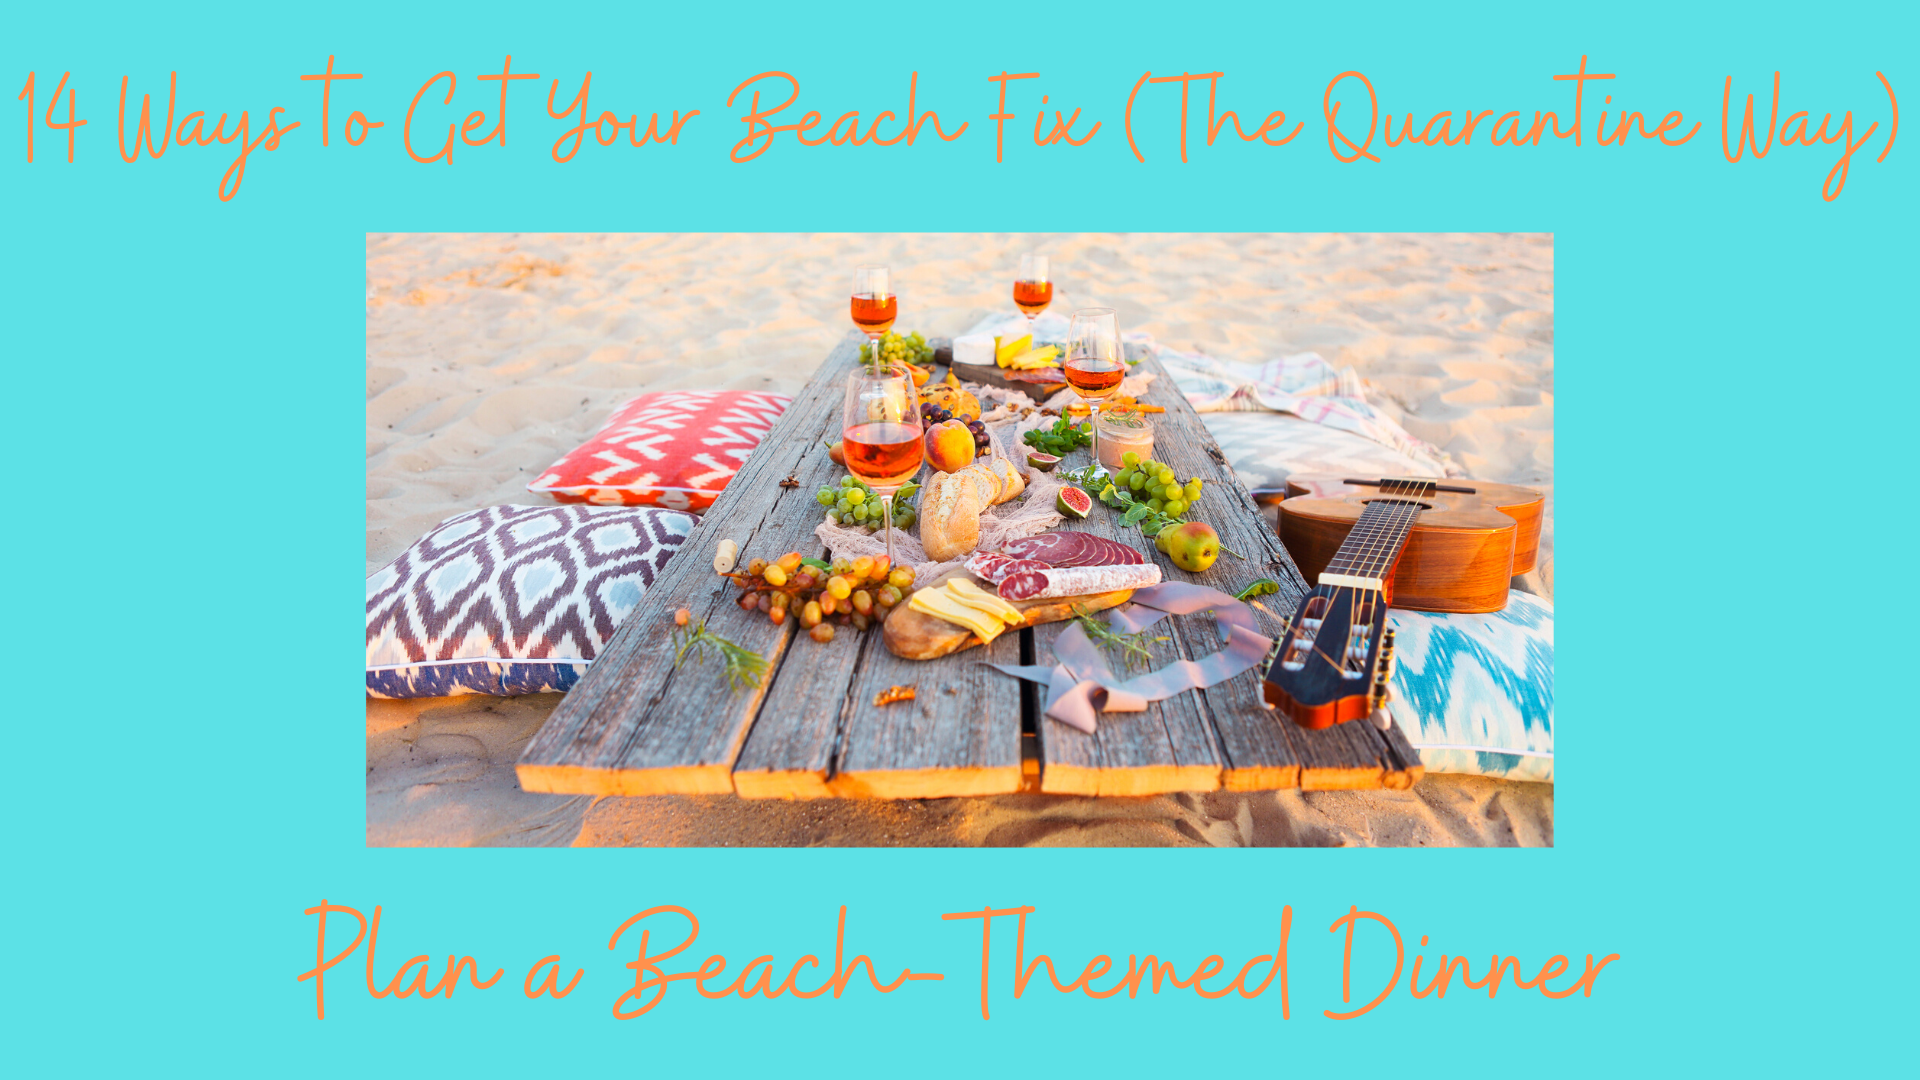 14 Ways to Get Your Beach Fix (The Quarantine Way) – #12 Plan a Beach-Themed Dinner